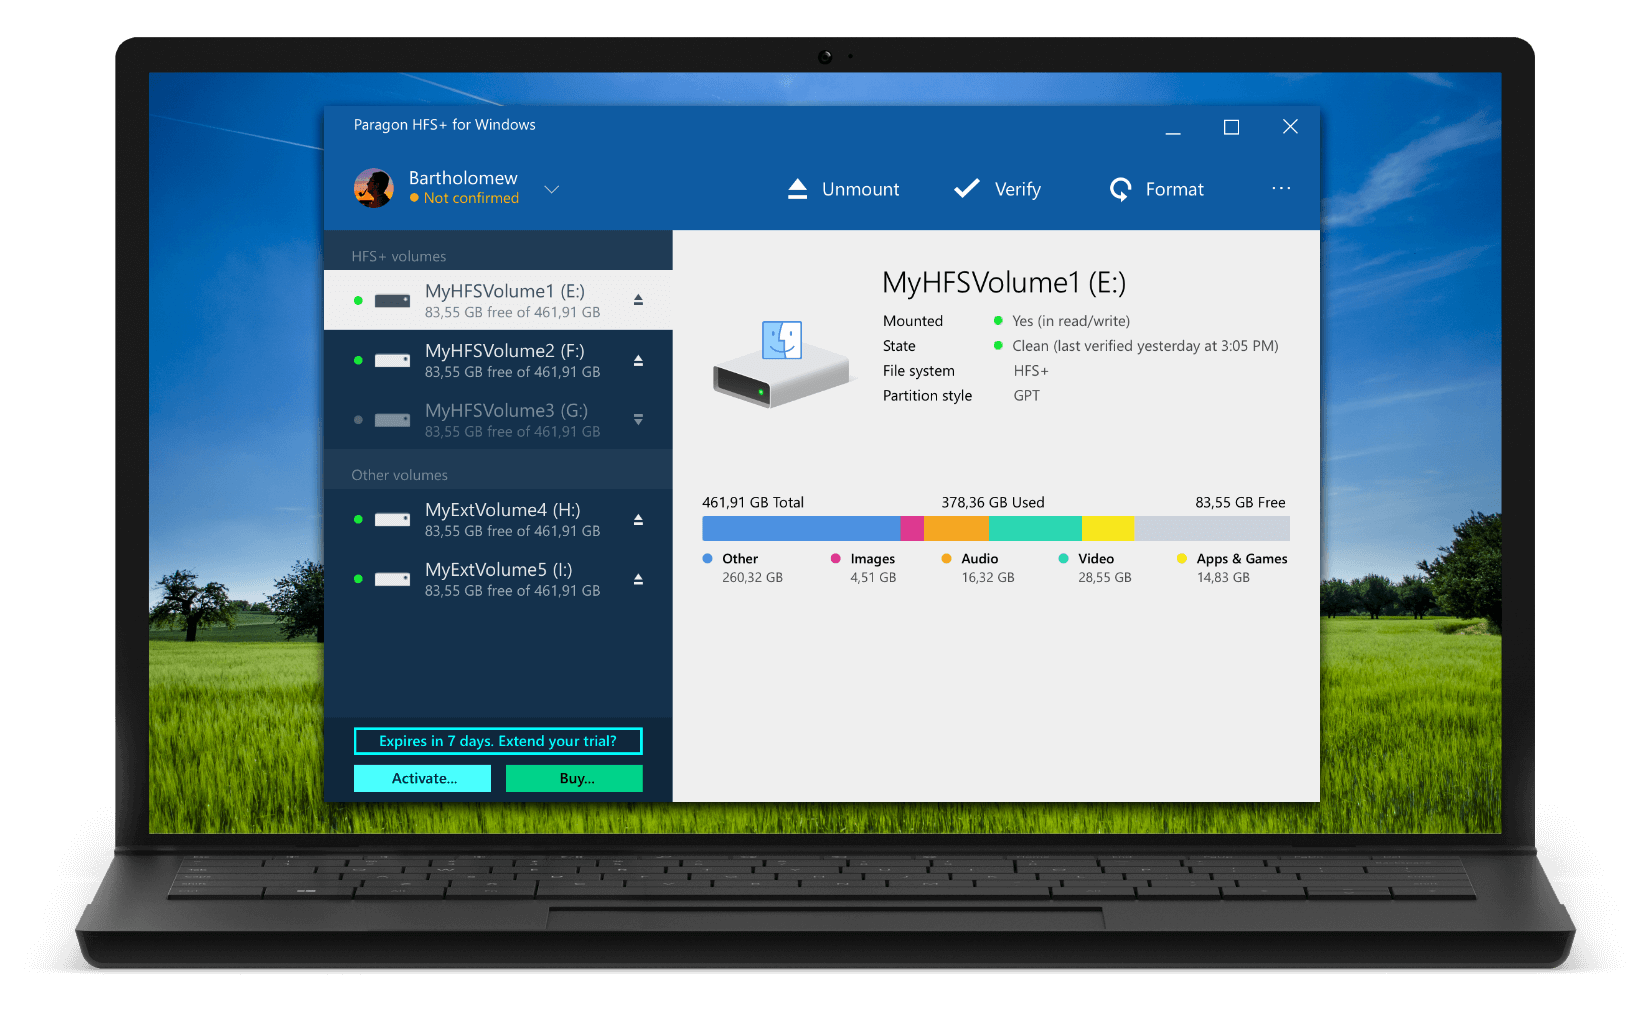 HFS+ for Windows by Paragon Software| Paragon Software